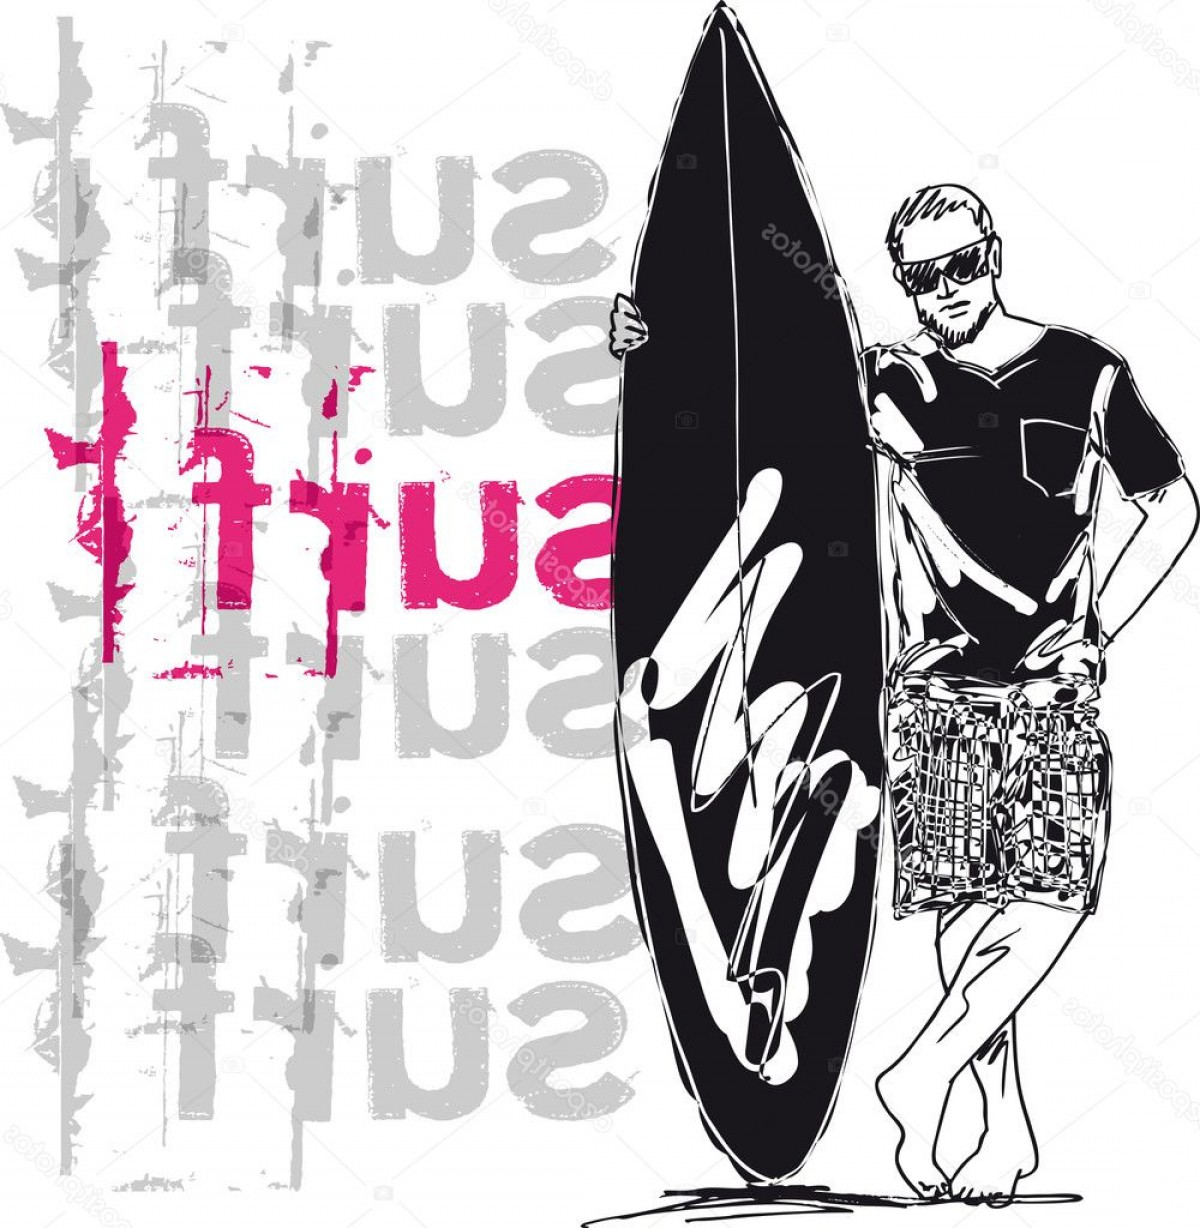 Surfboard Vector Drawing: Stock Illustration Sketch Of Man With Surfboard